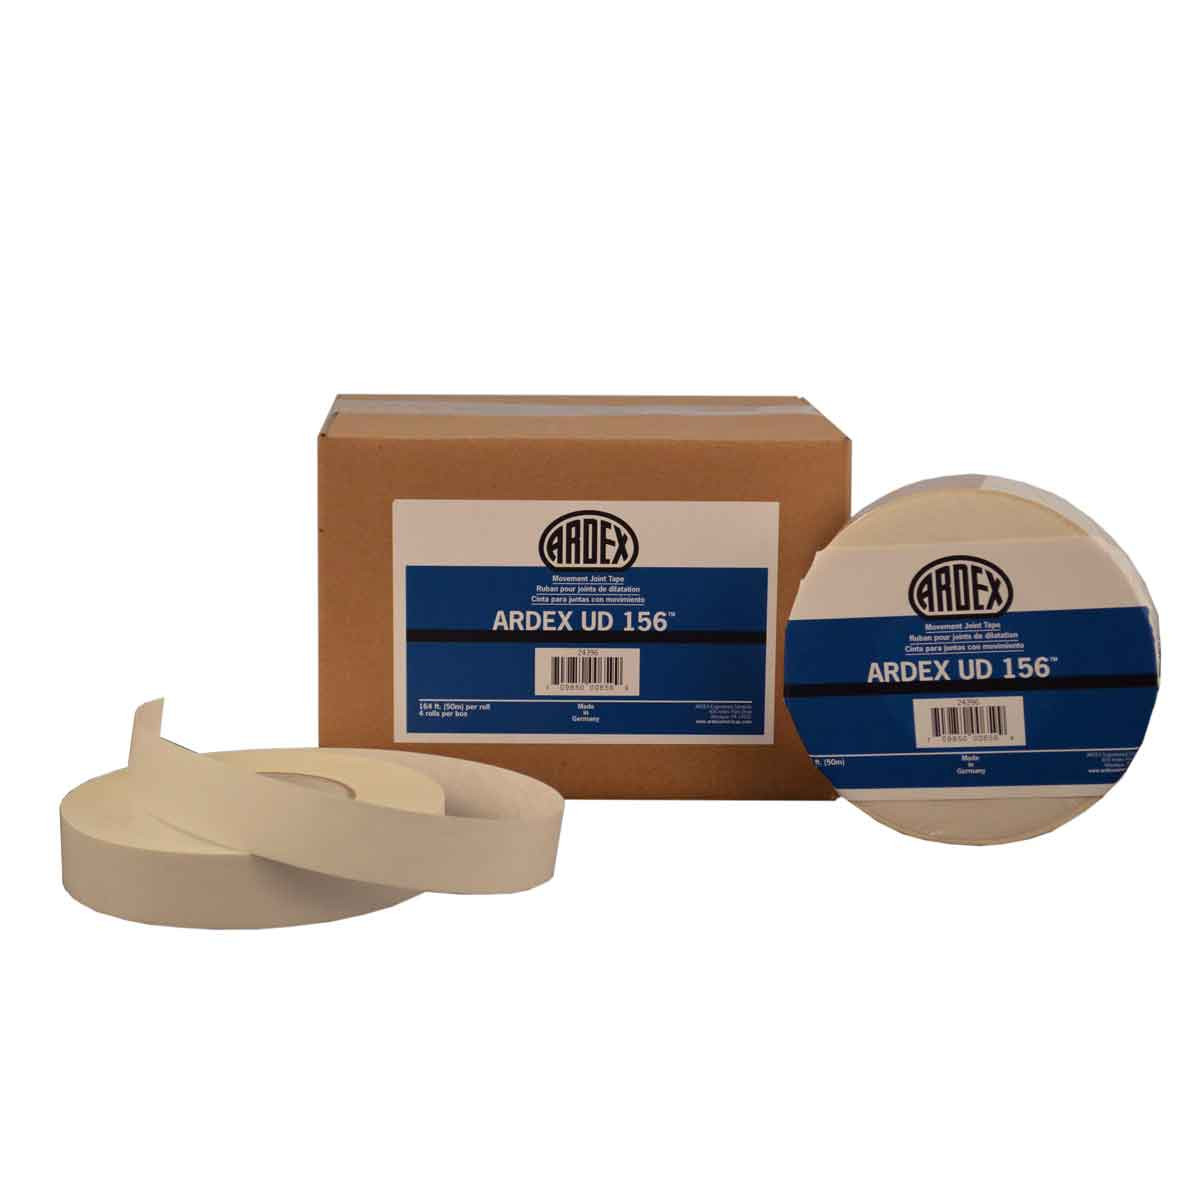 Ardex UD 156 Movement Joint Tape